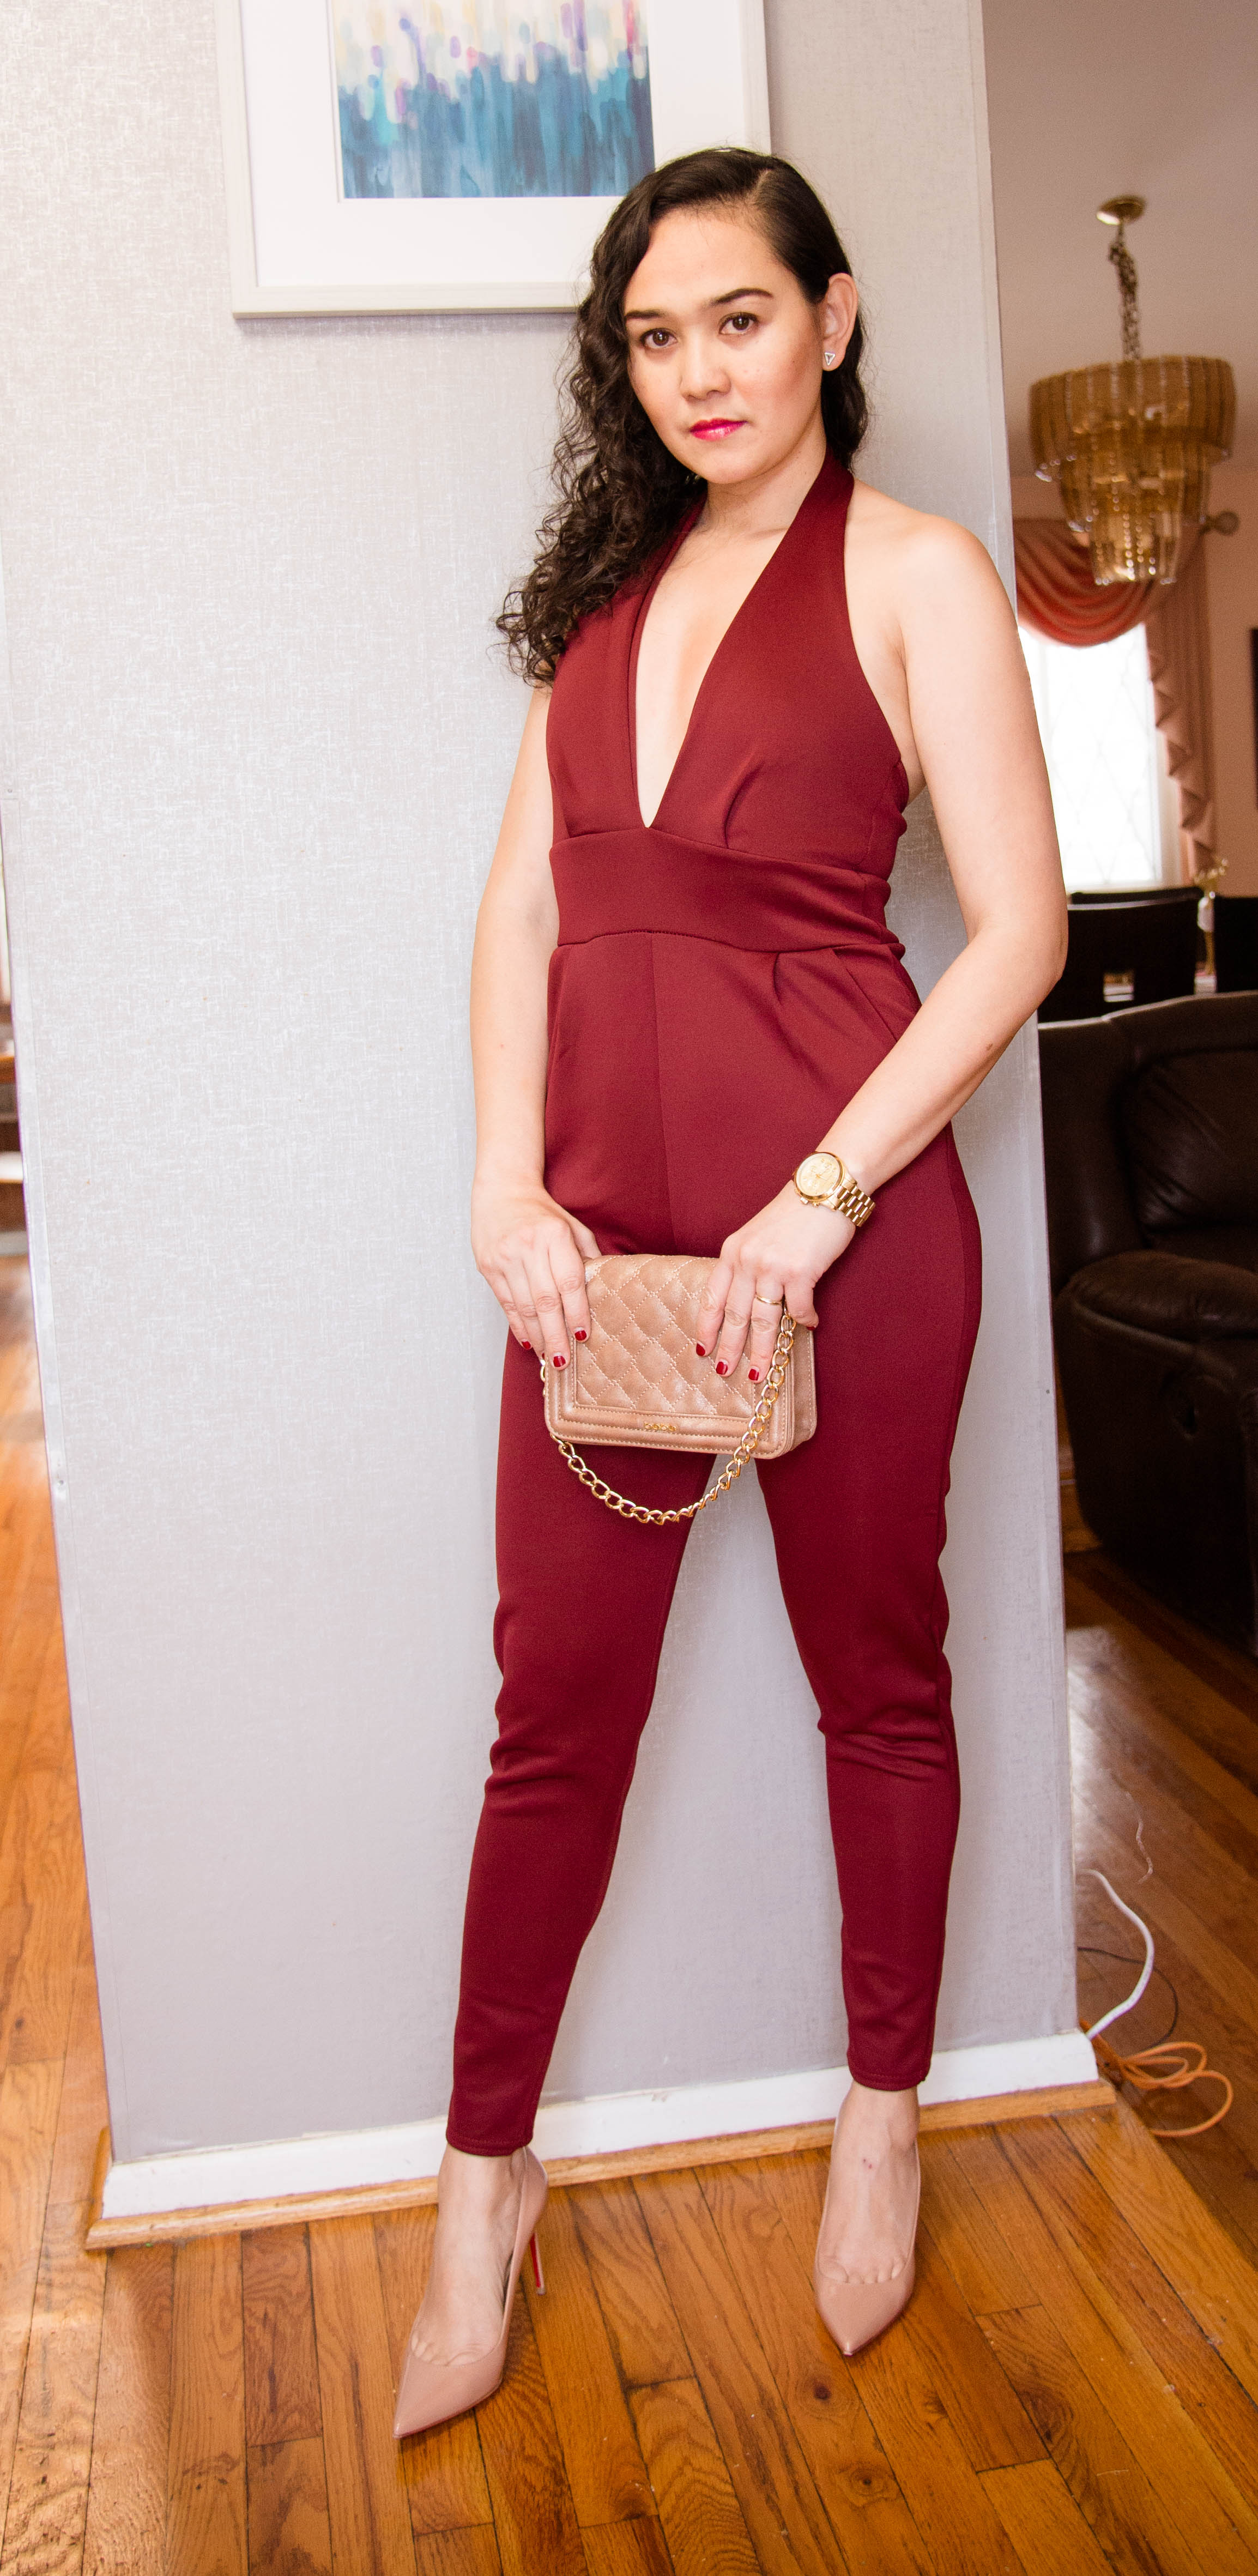 Jumpsuit for Valentine's Date